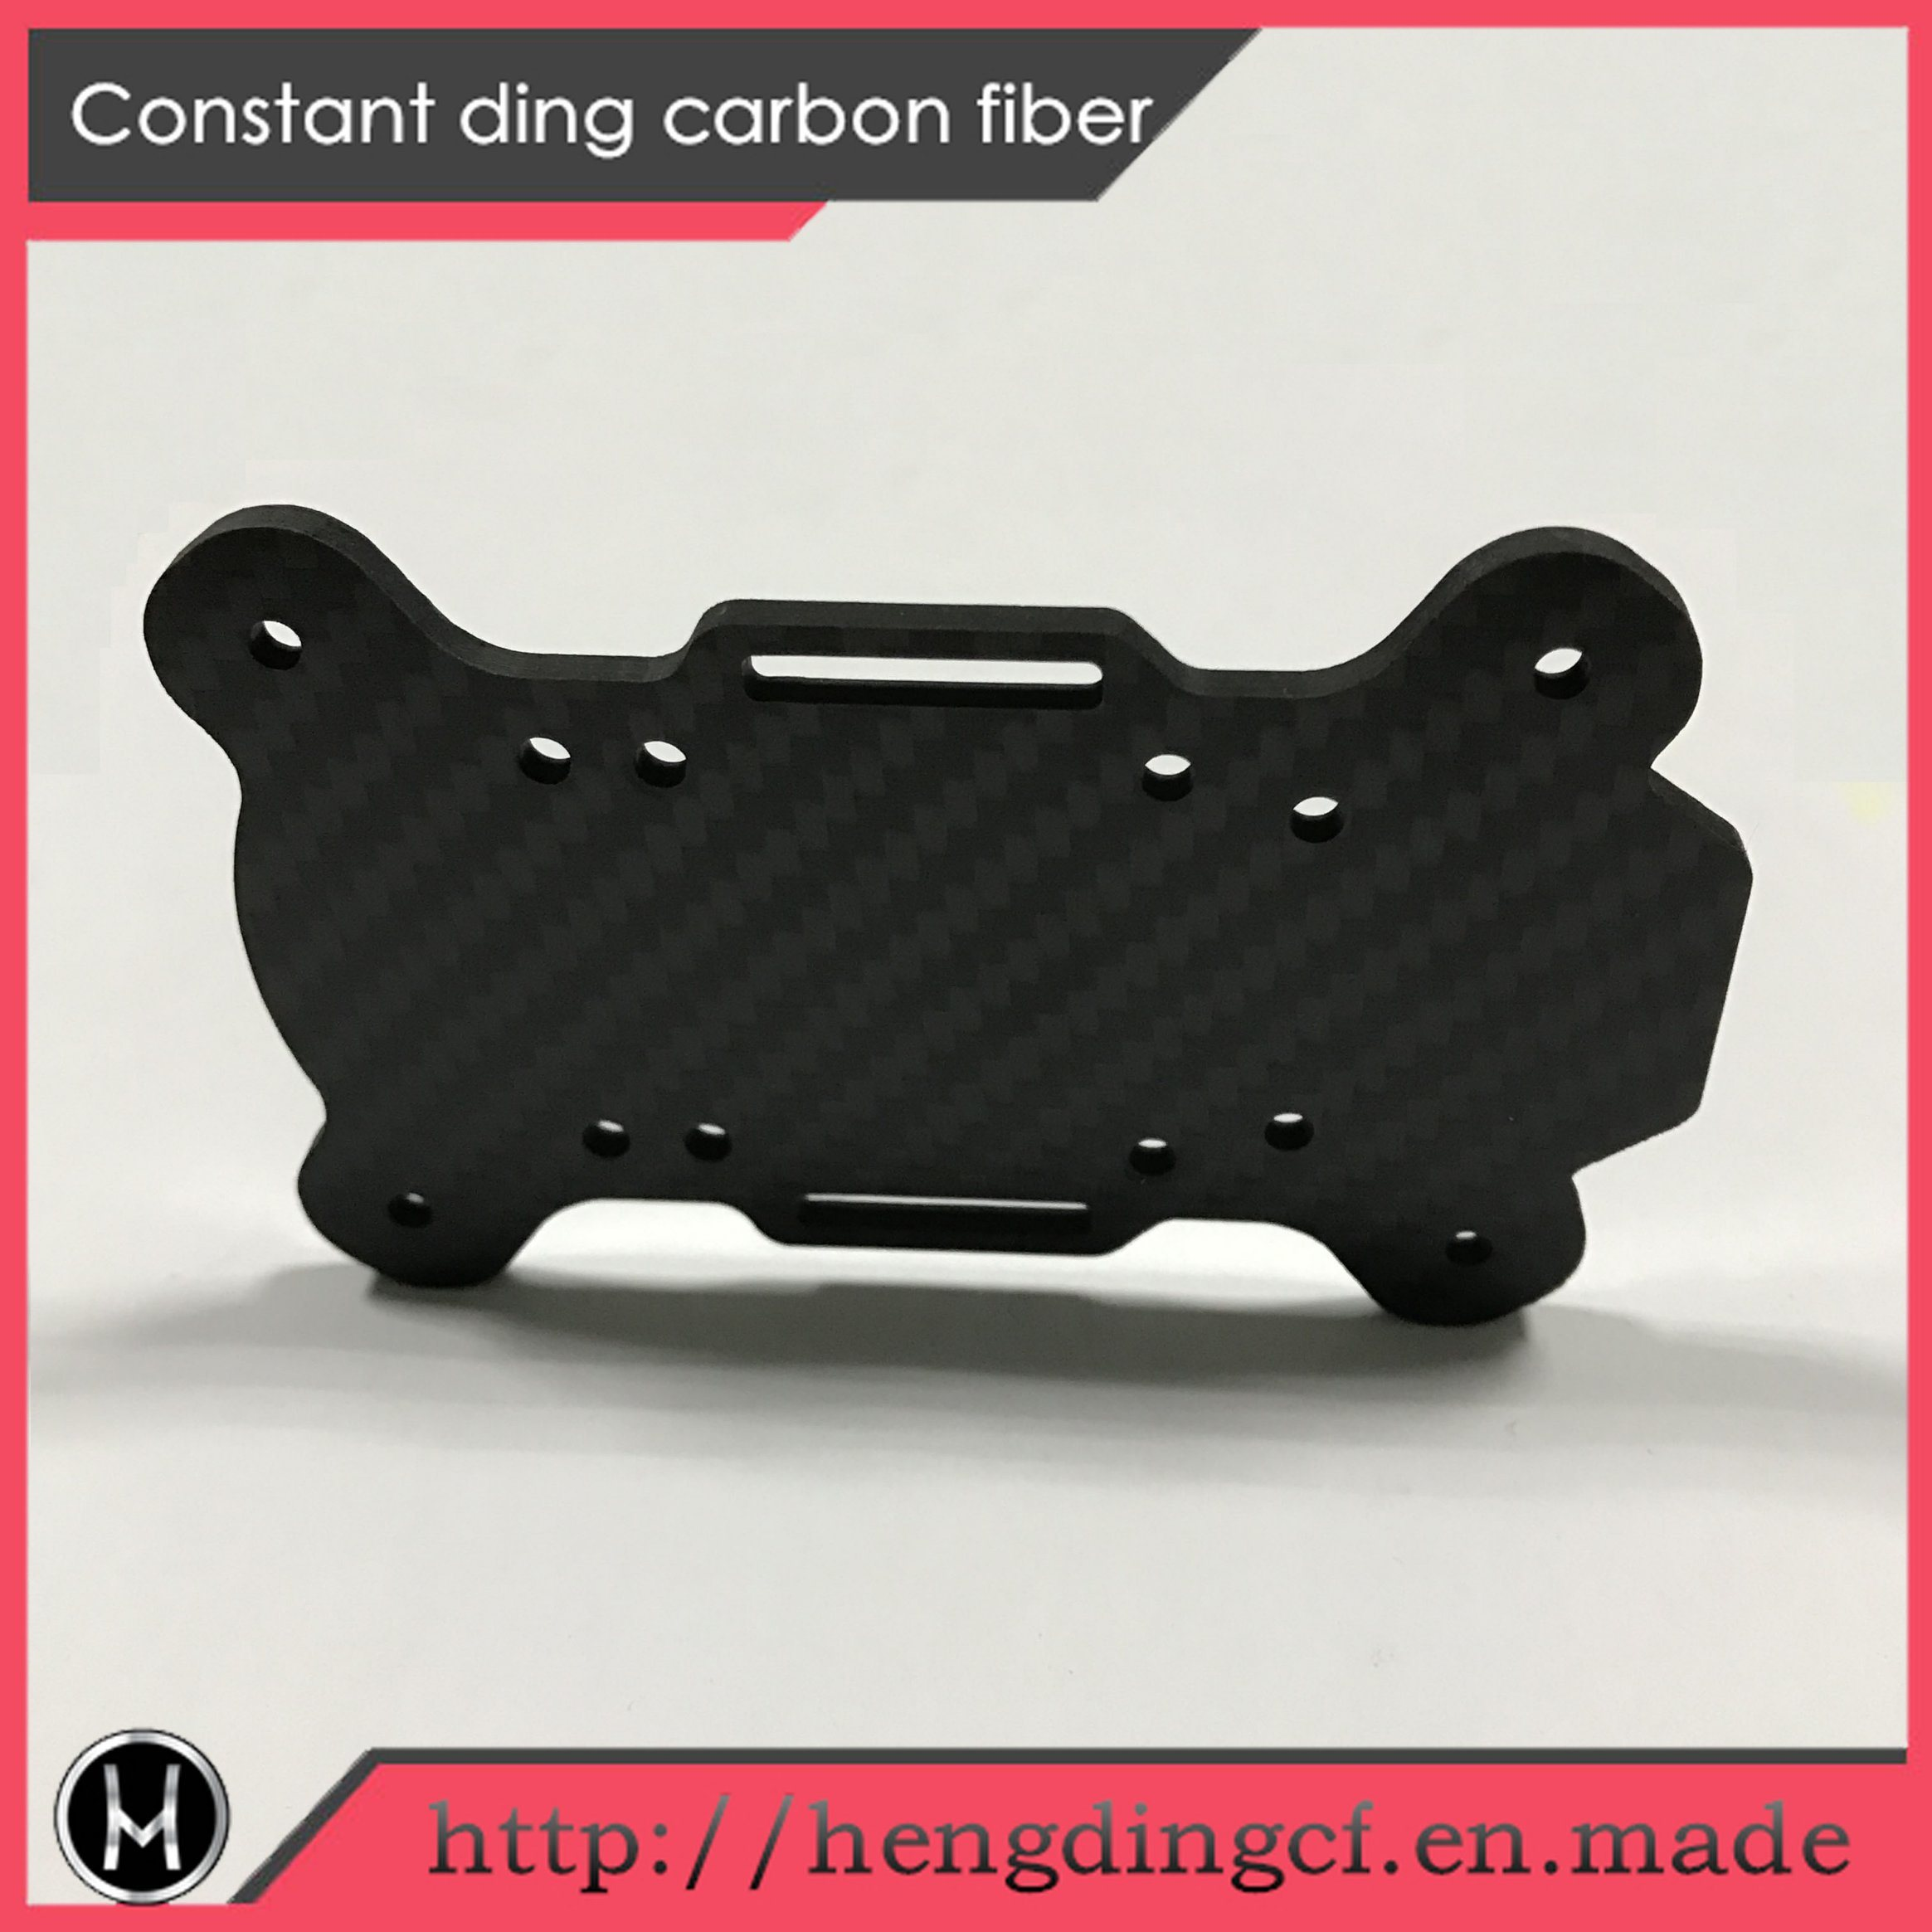 Gde New Carbon Fiber Boards for Remote Controlled Plane/Uav/Airplane